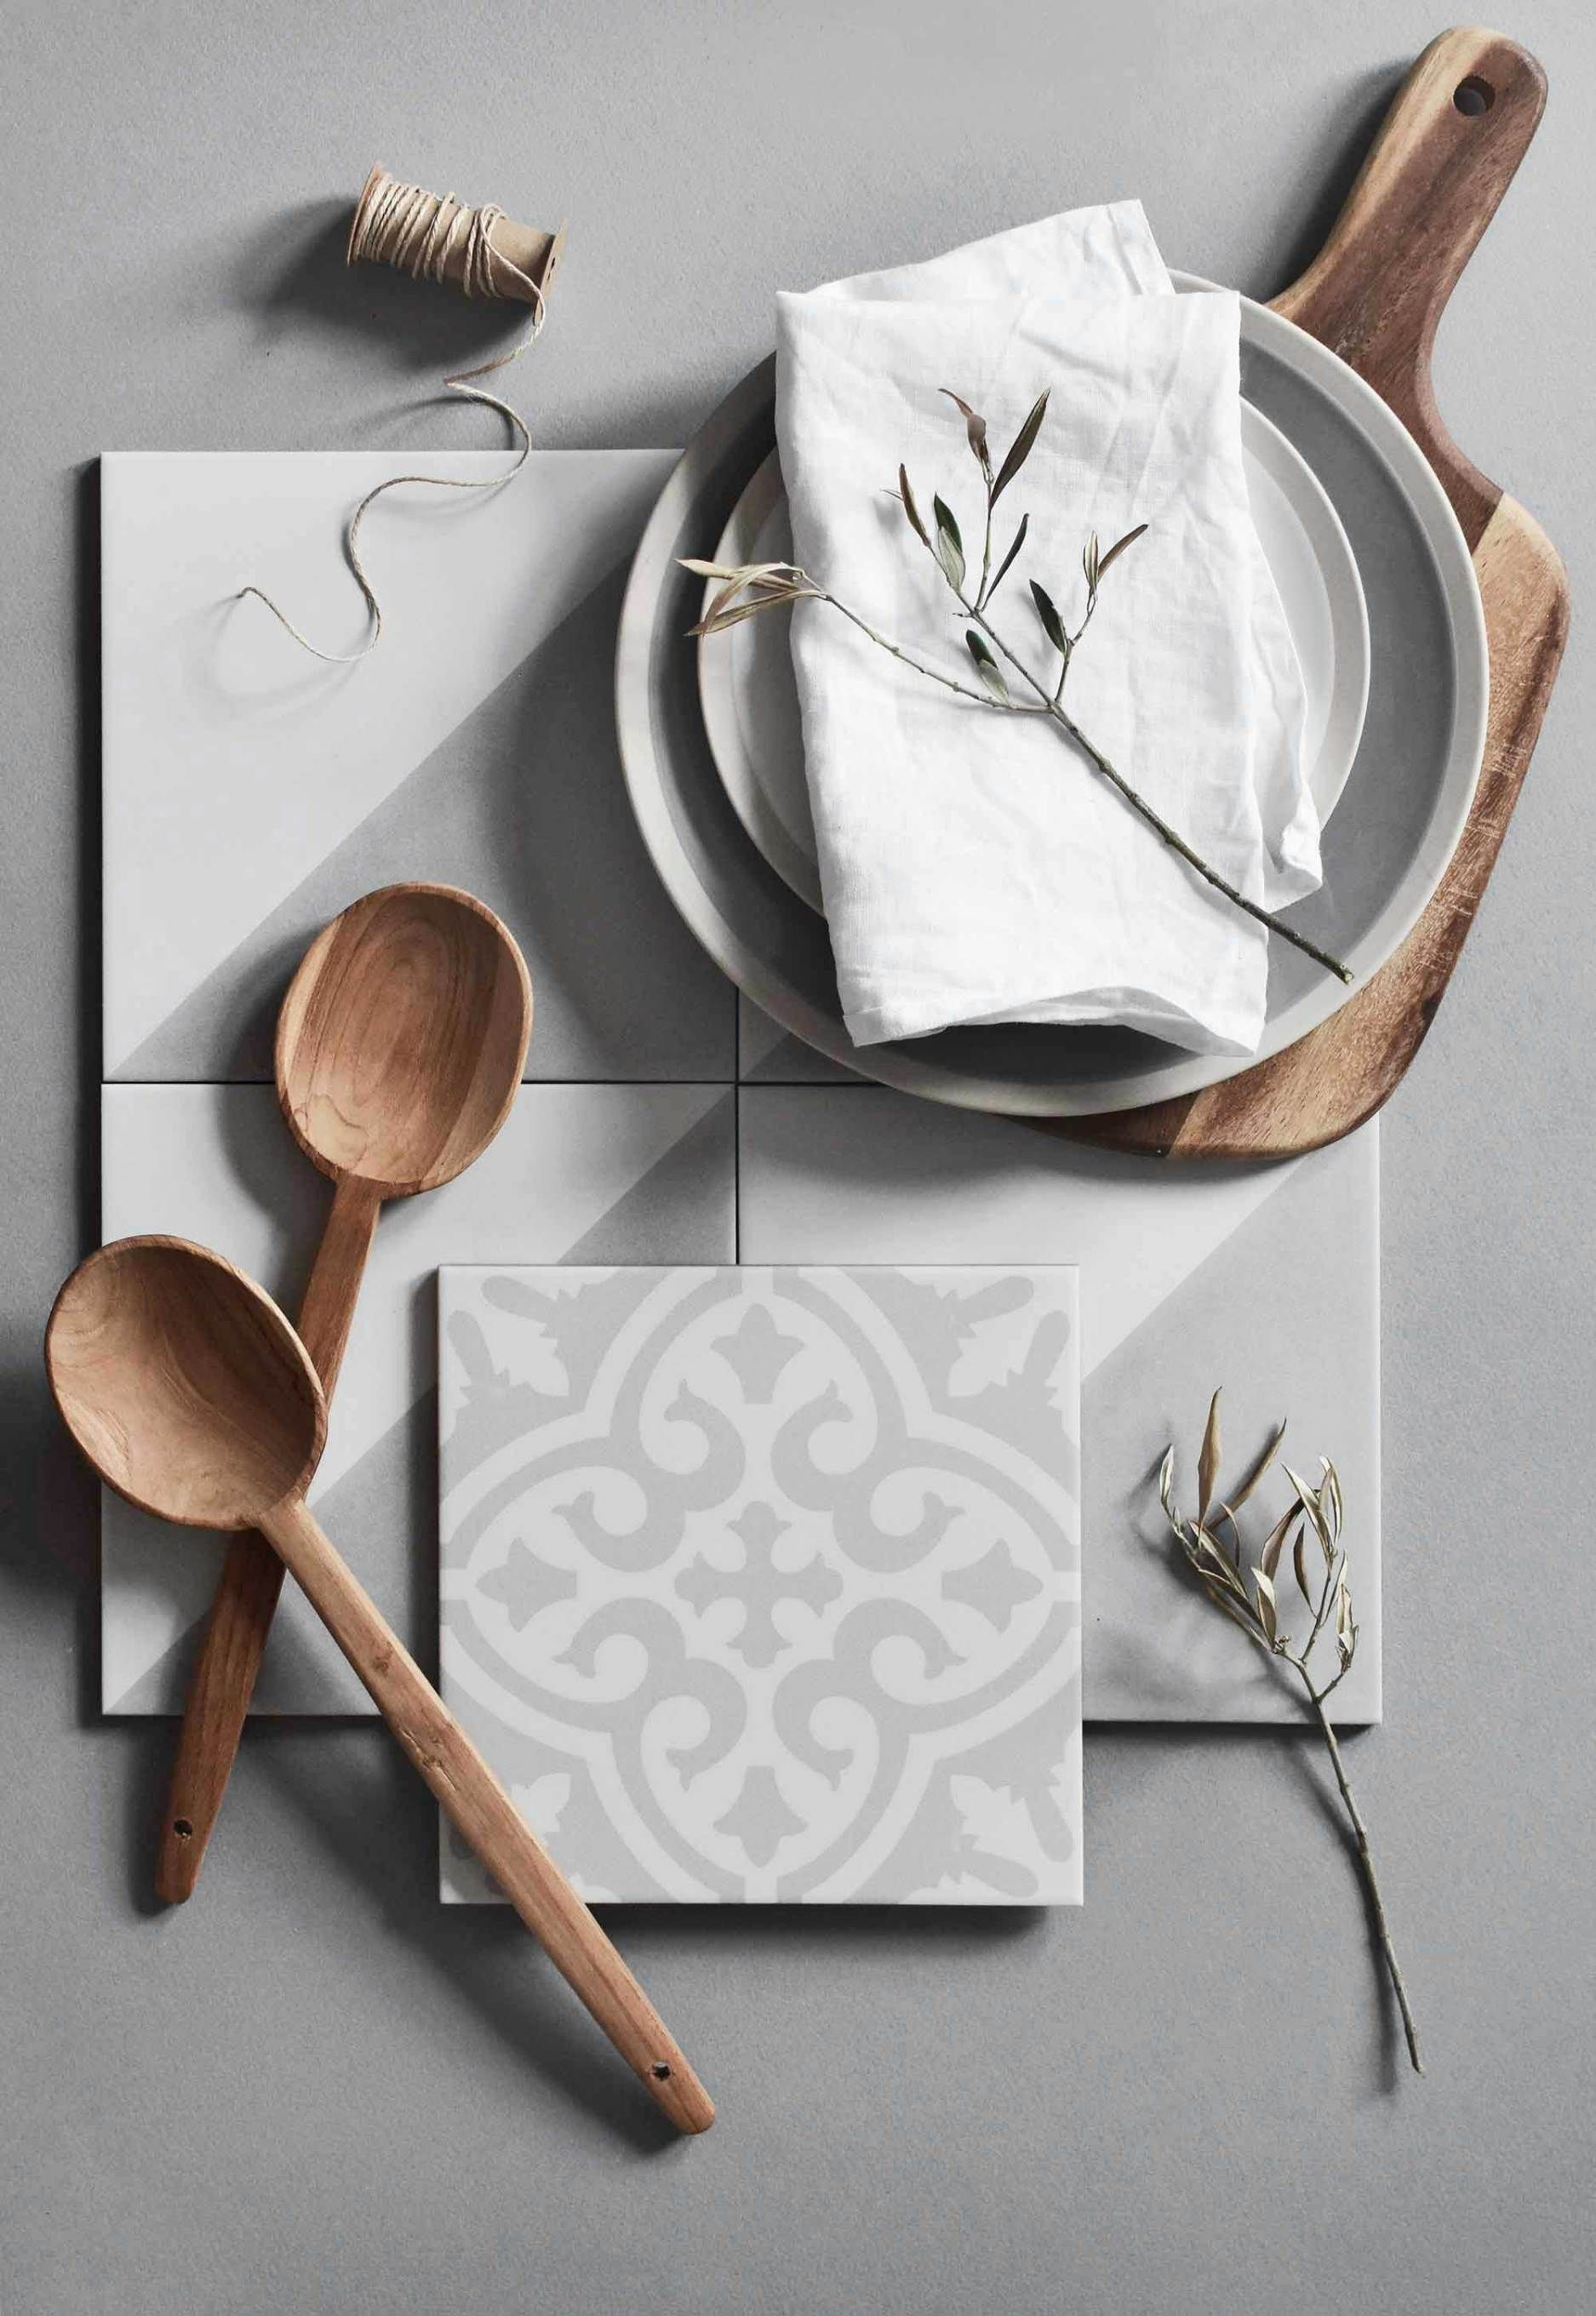 Mood board inspiration: styling tiles five ways #moodboards